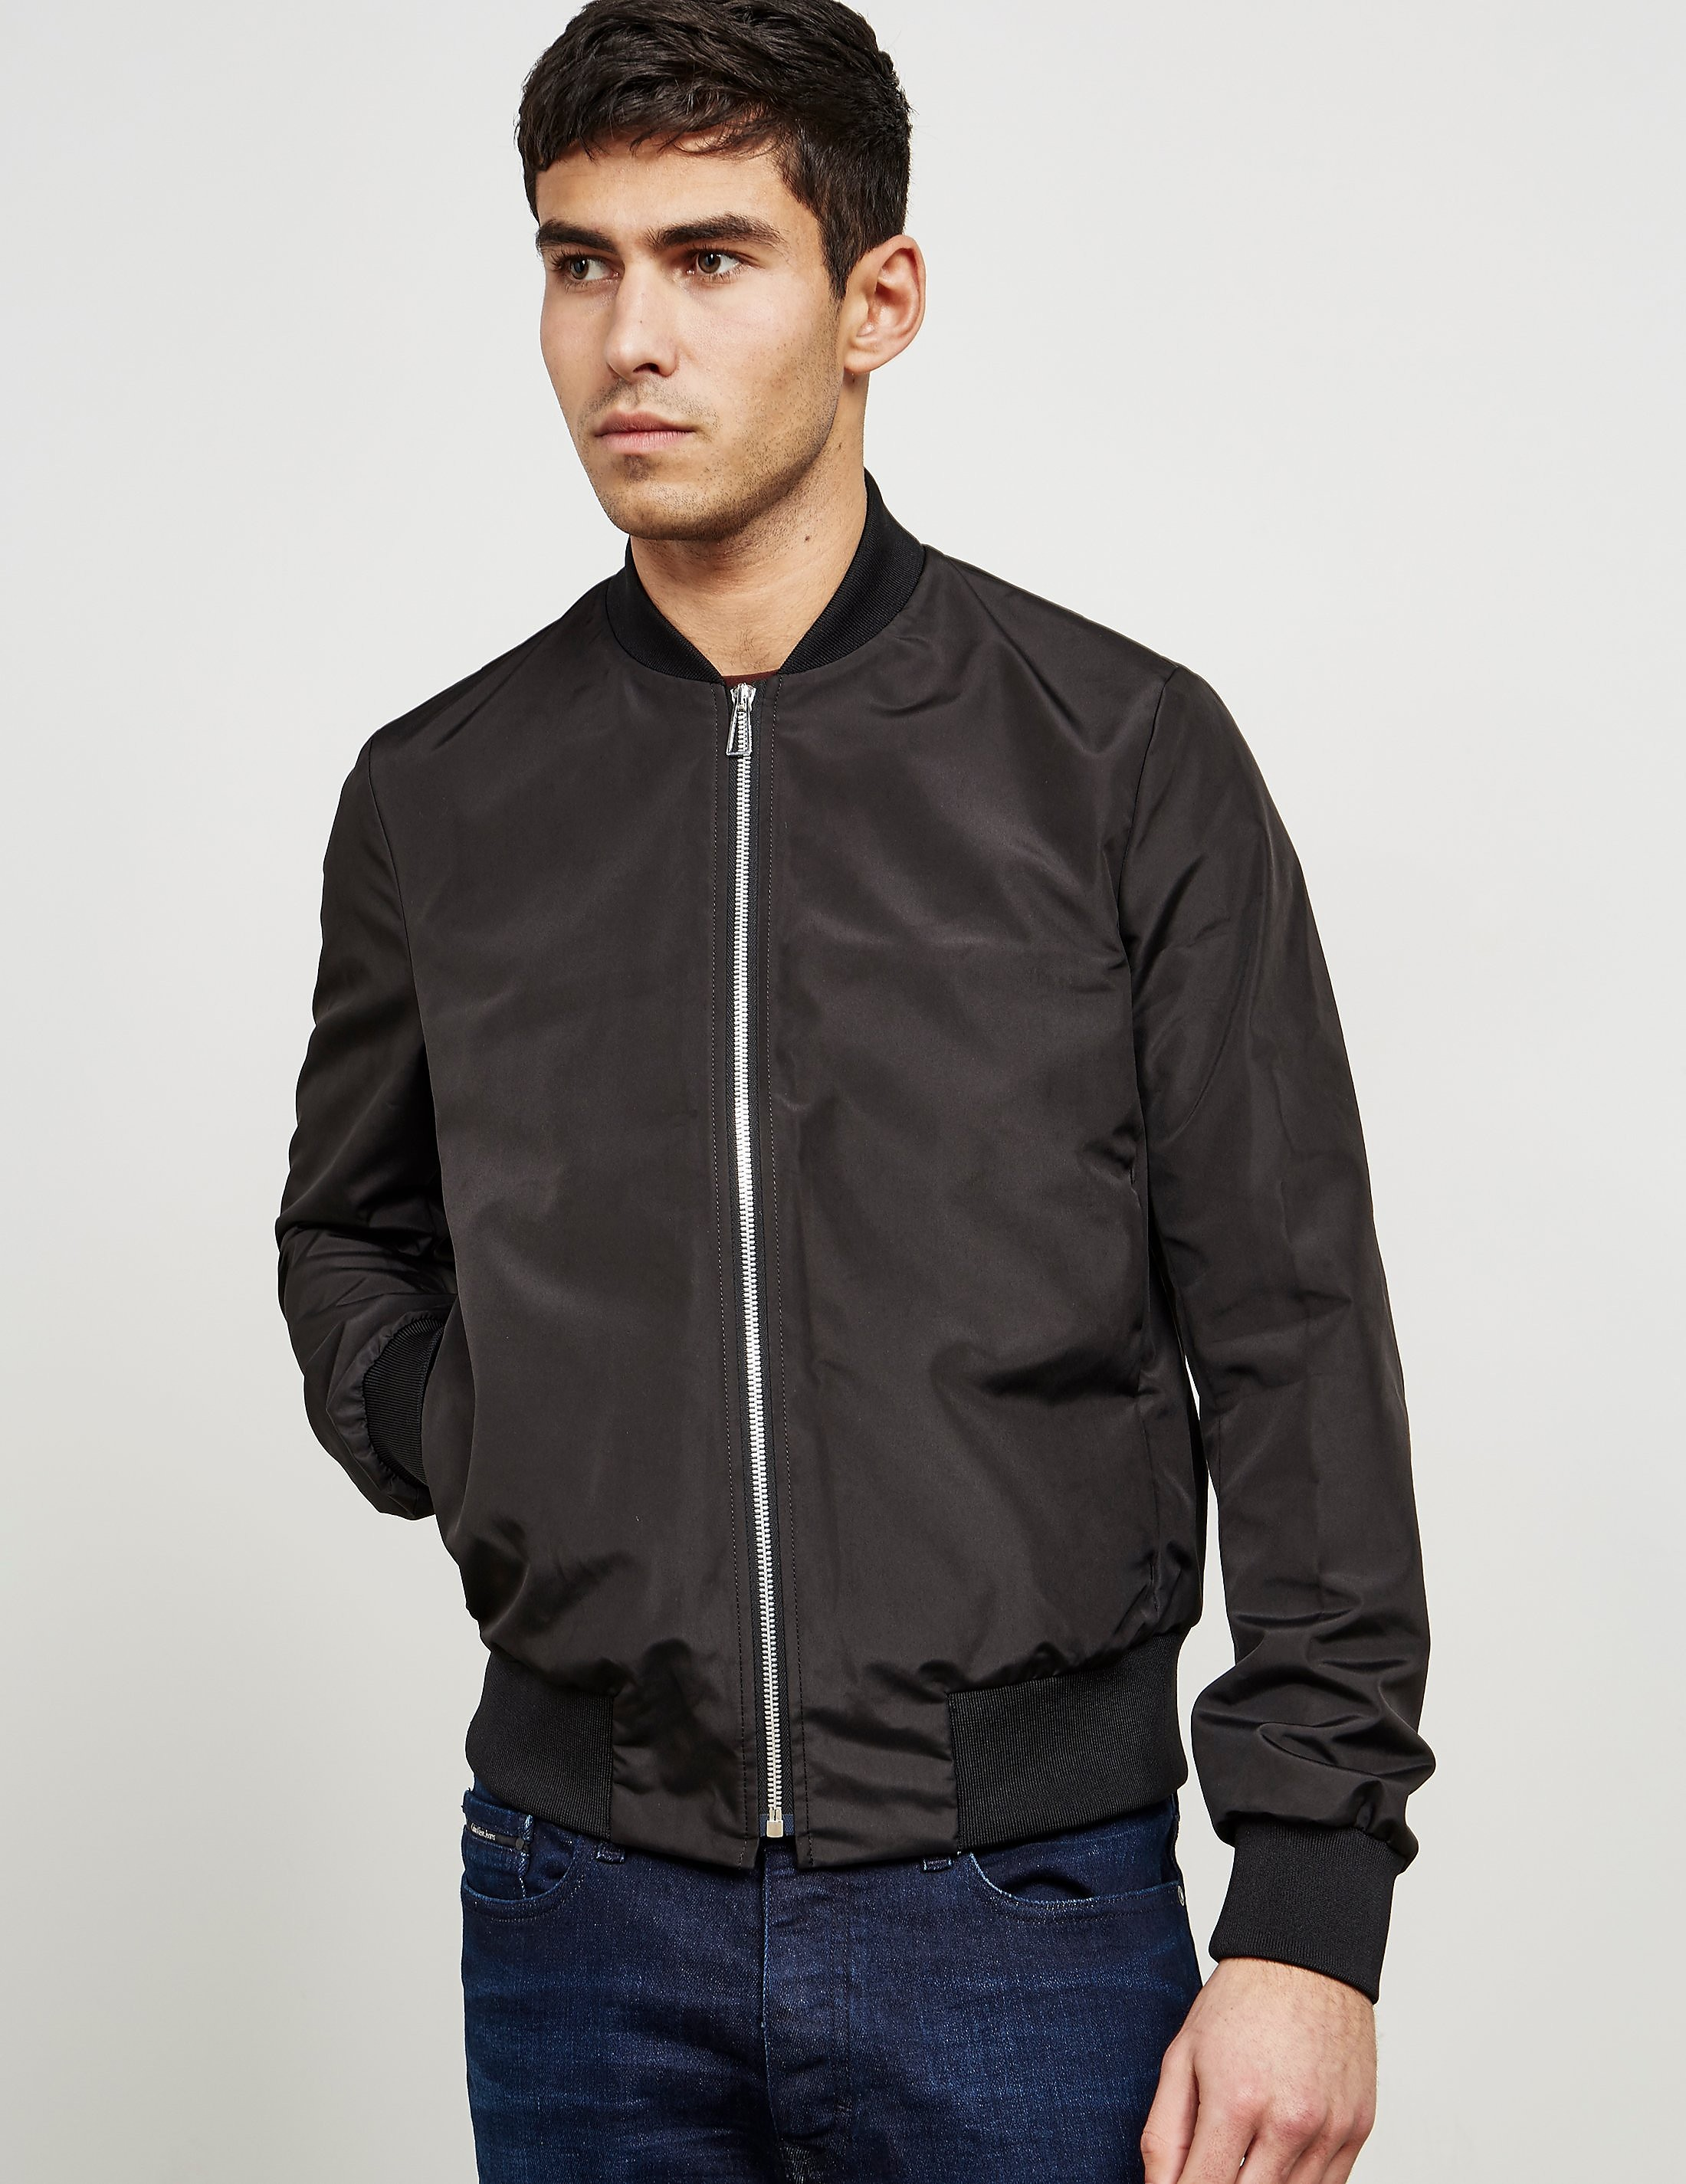 Paul Smith Water-Resistant Bomber Jacket